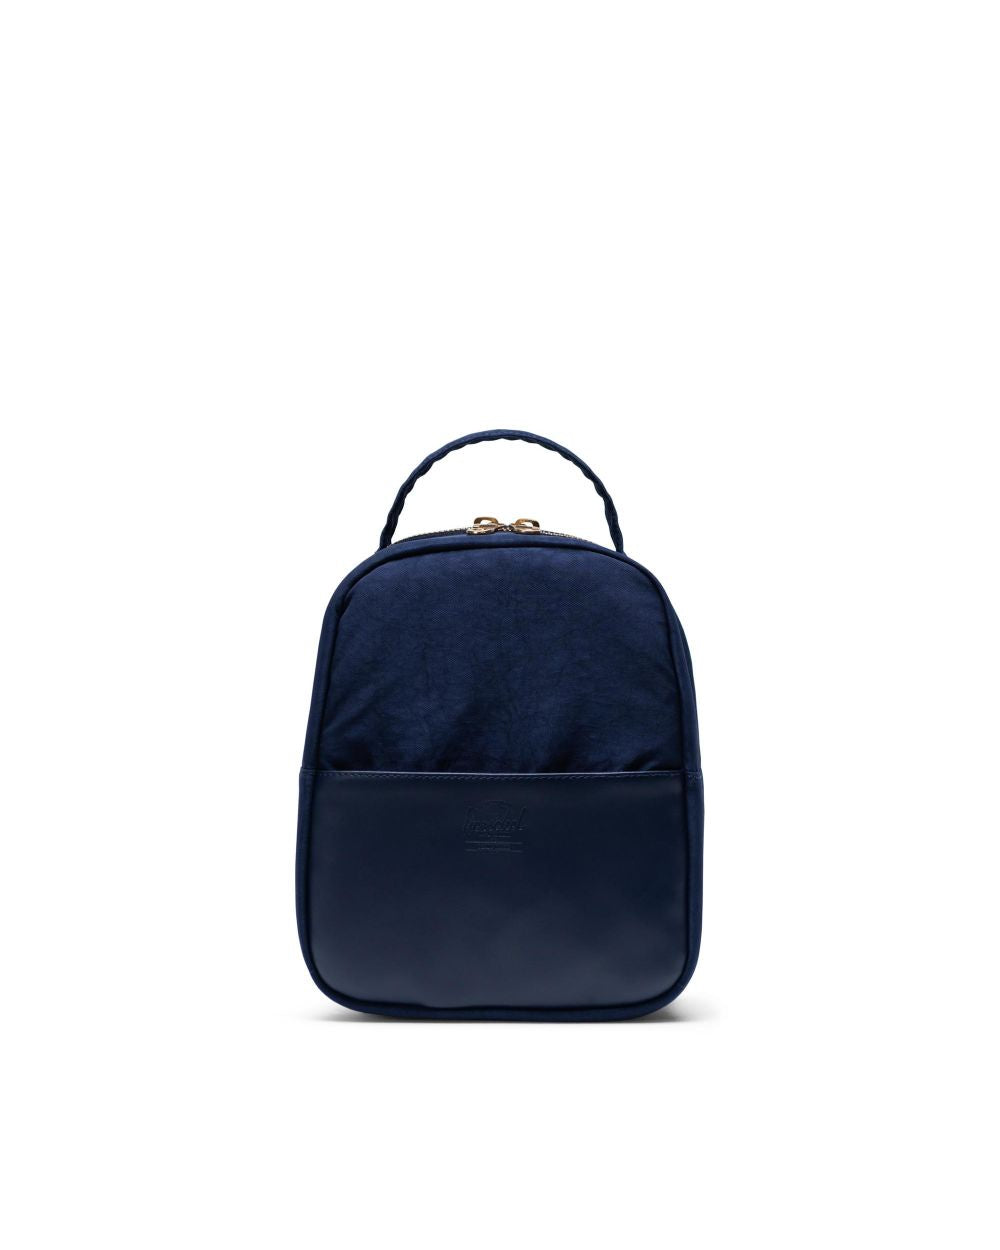 HERSCHEL - ORION BACKPACK MINI IN PEACOAT